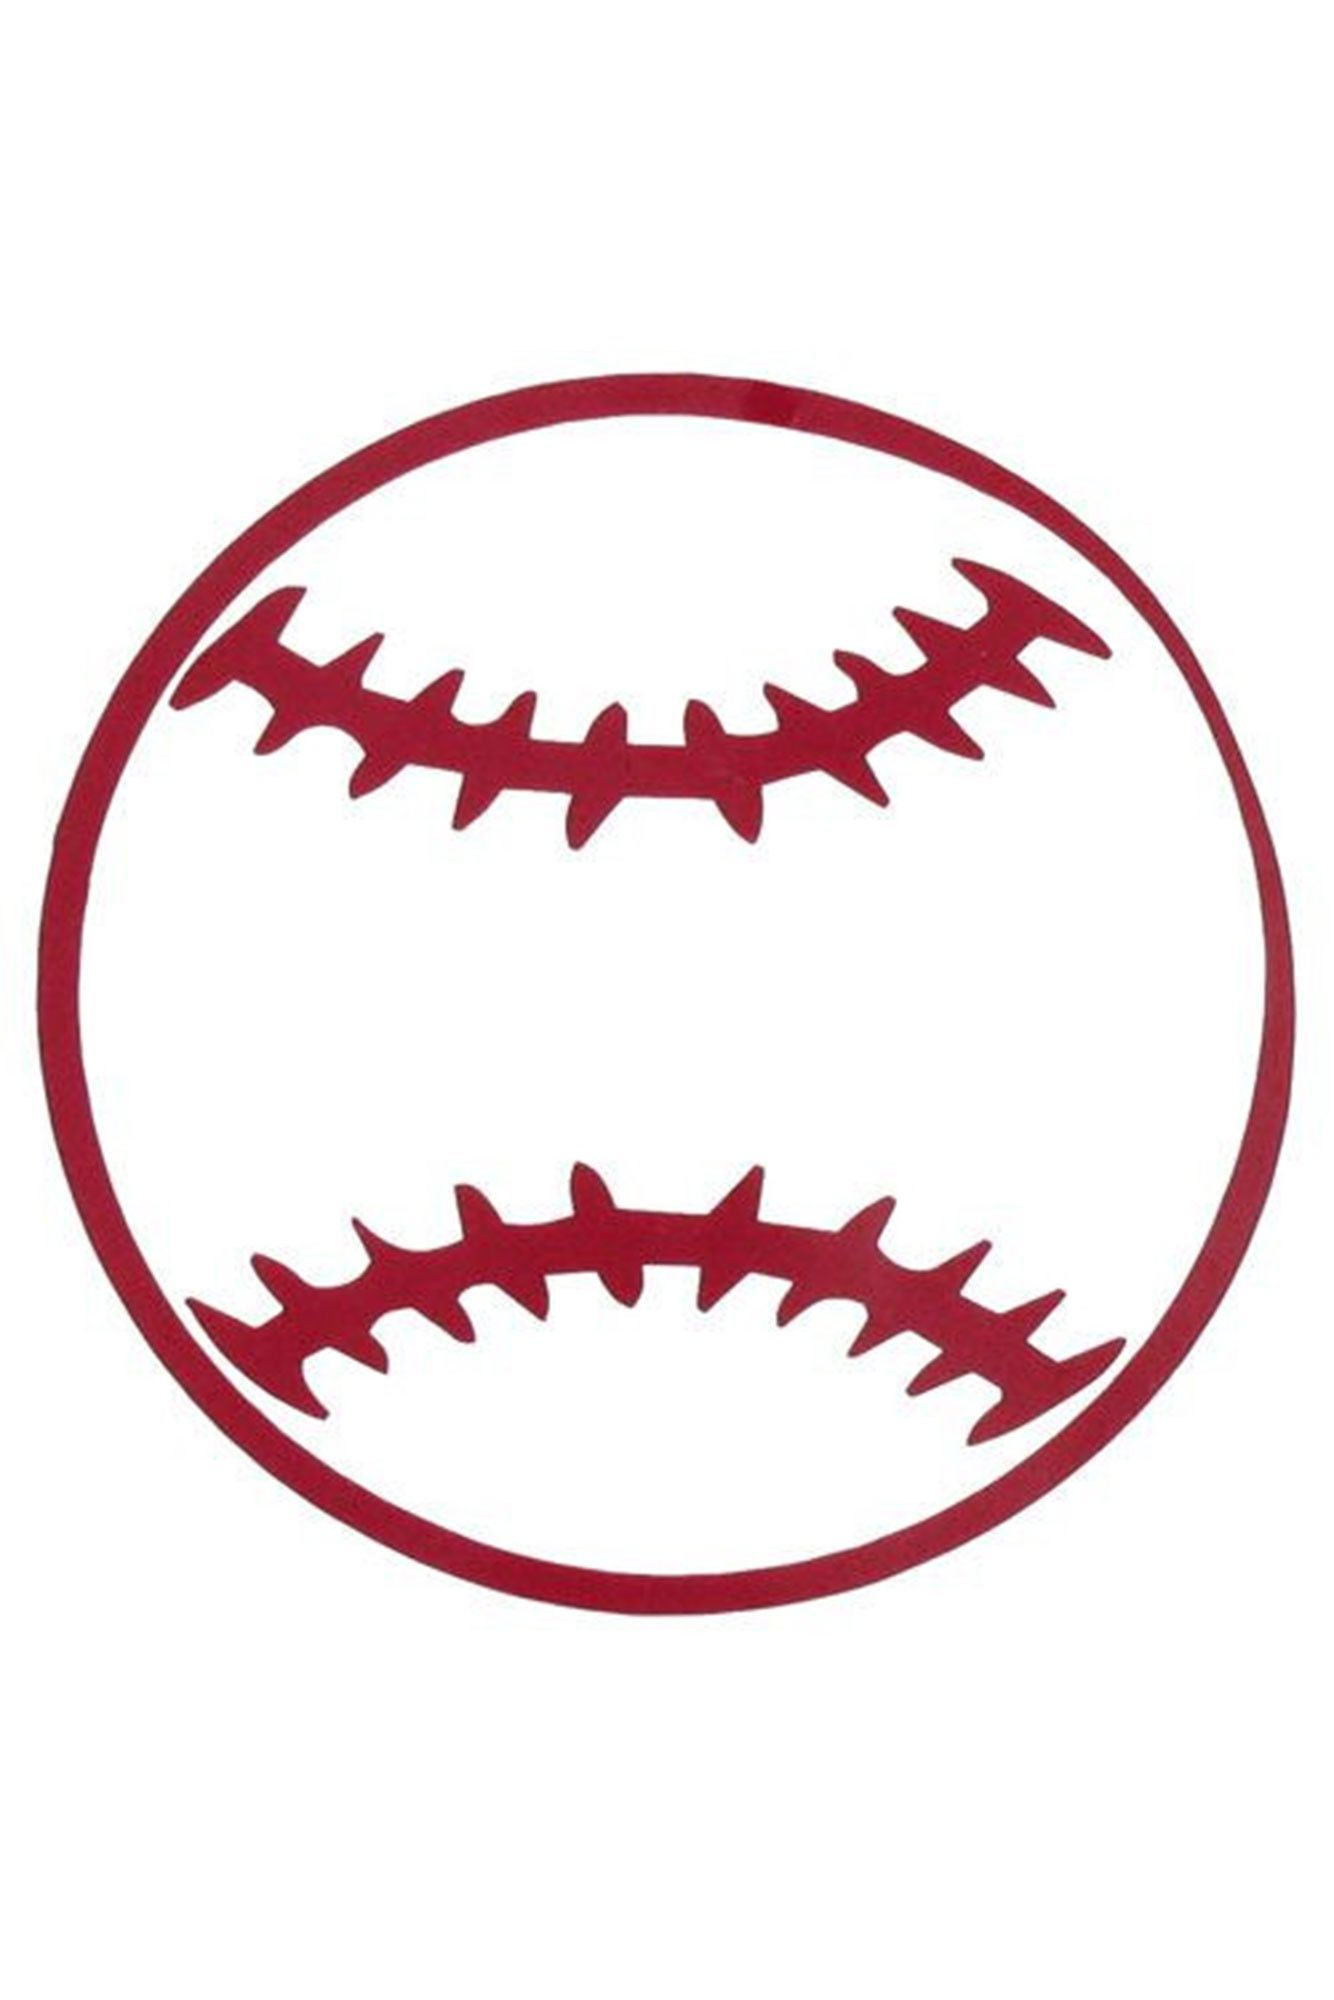 Baseball Vinyl Decoration Sy 54 Choose Your Color Products Baseball Softball Color